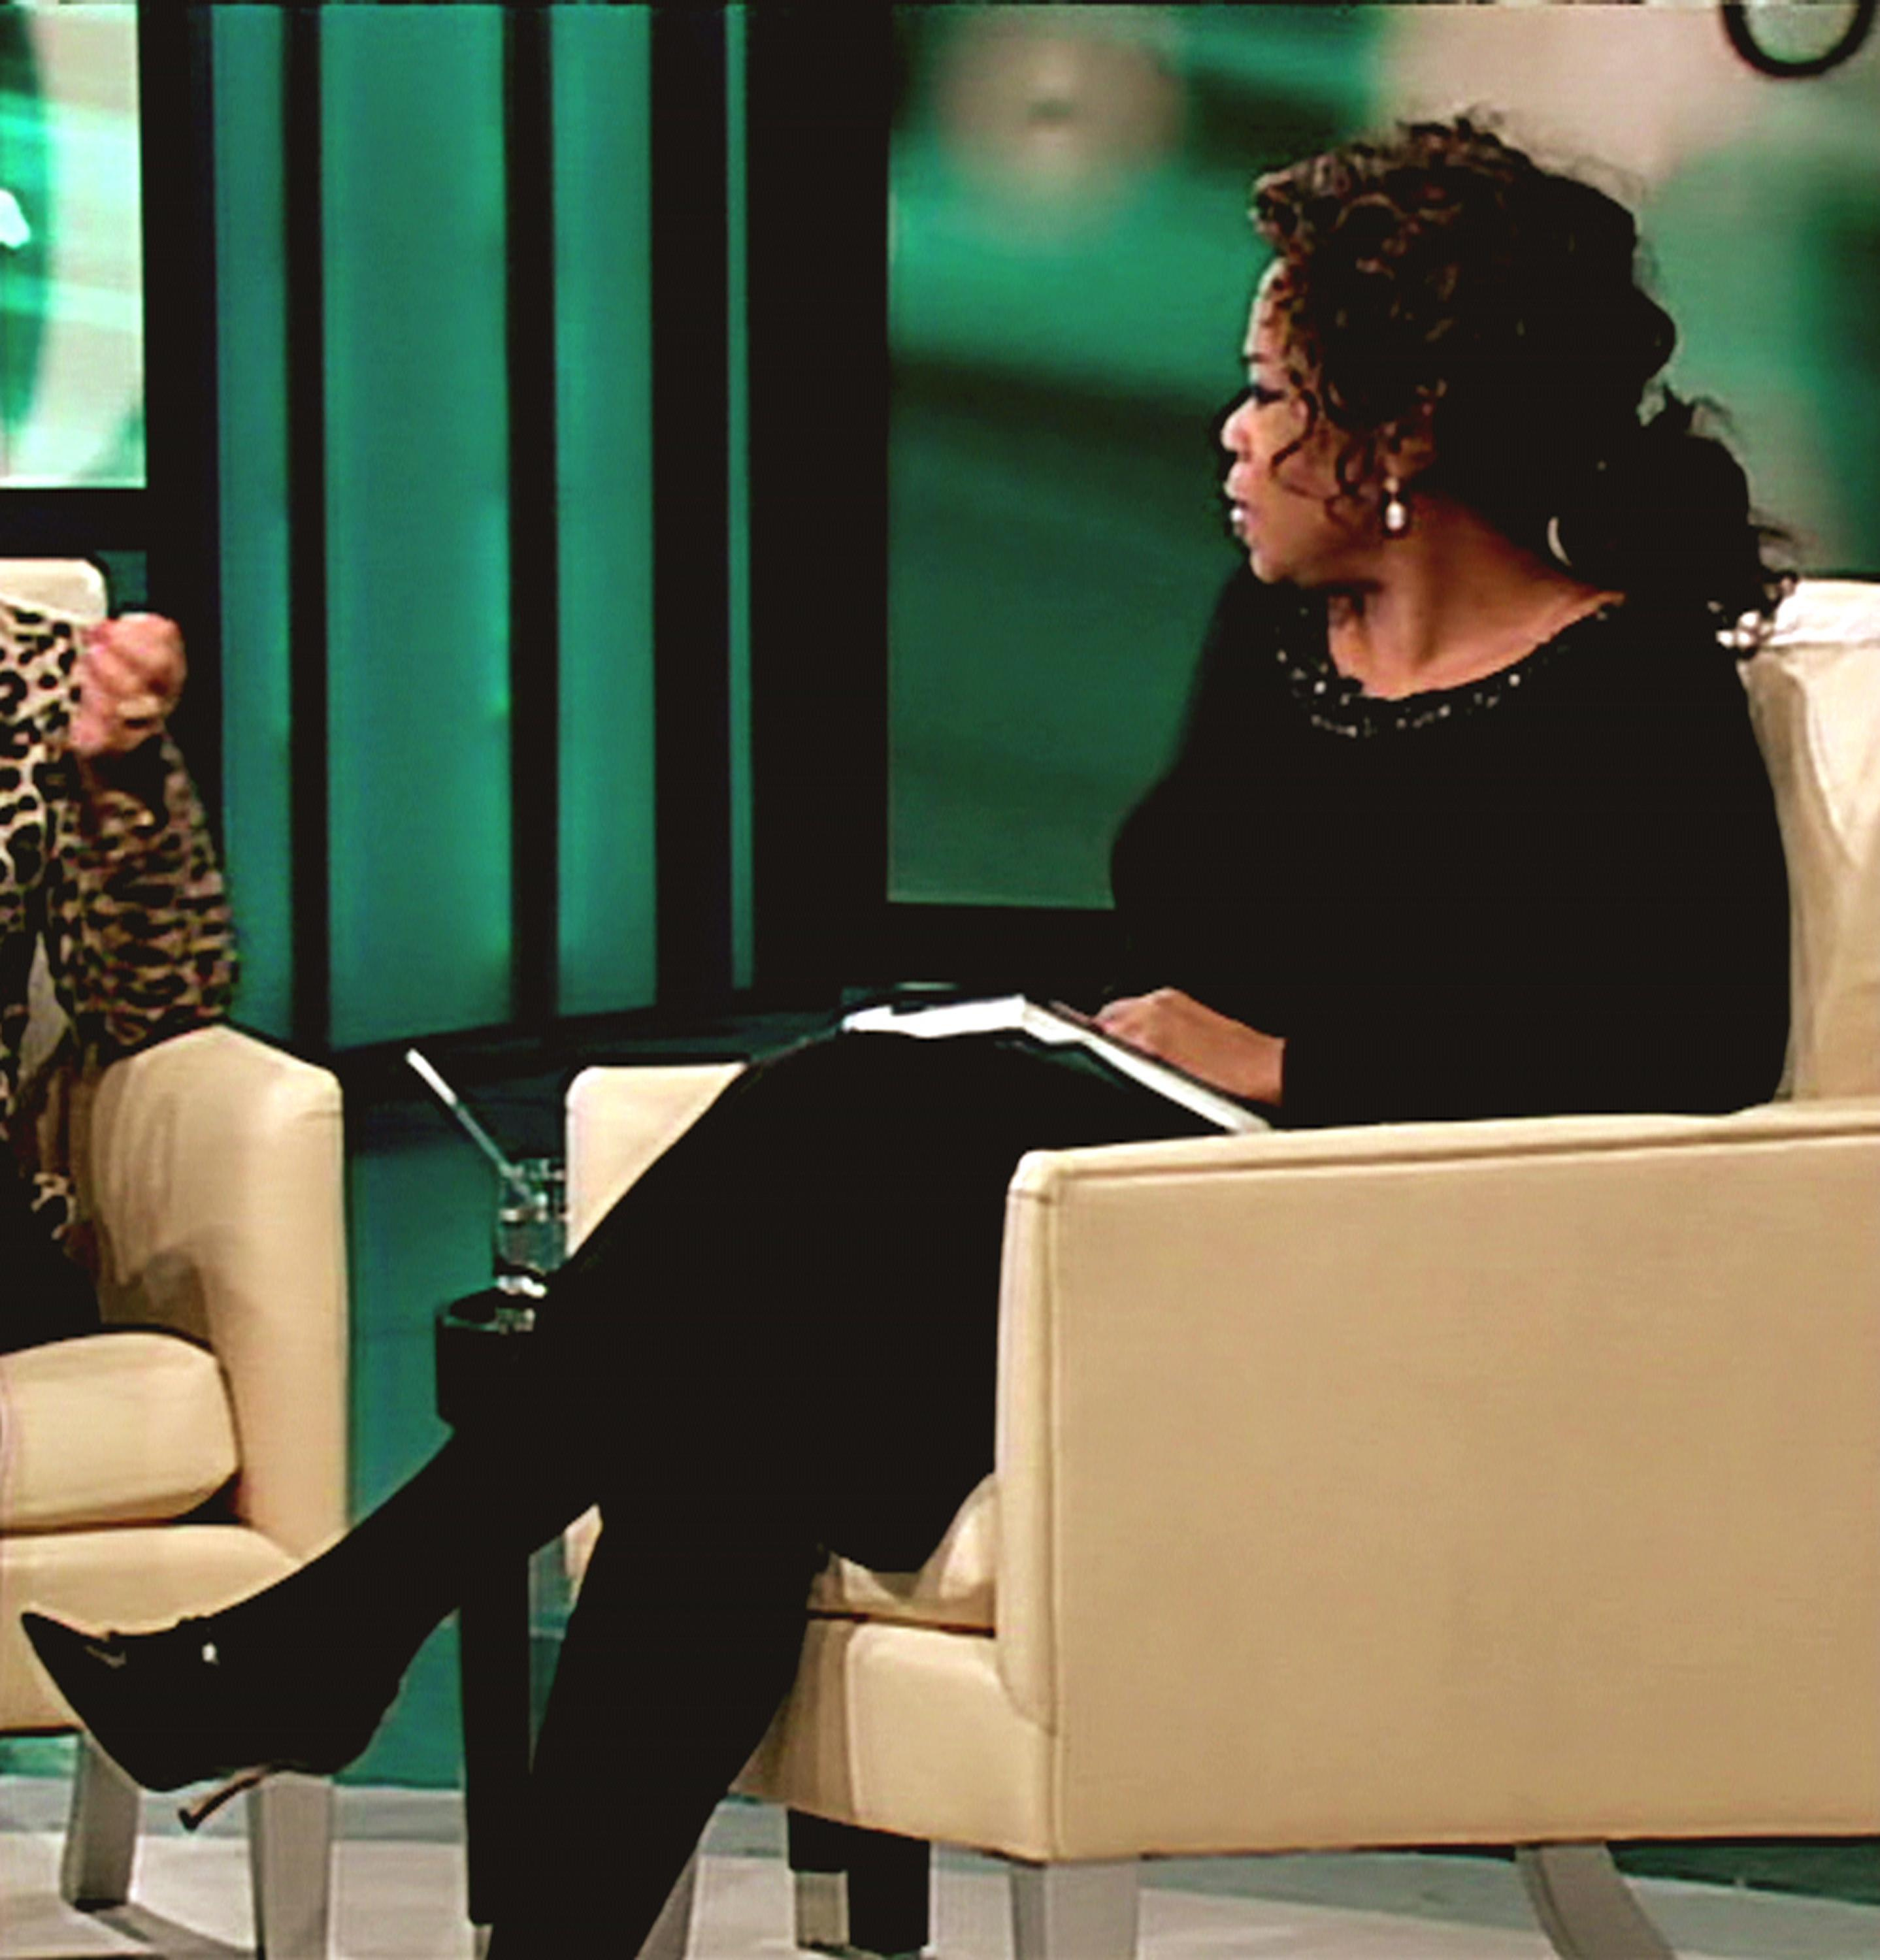 Oprah Winfrey on the Oprah Winfrey Show 2007